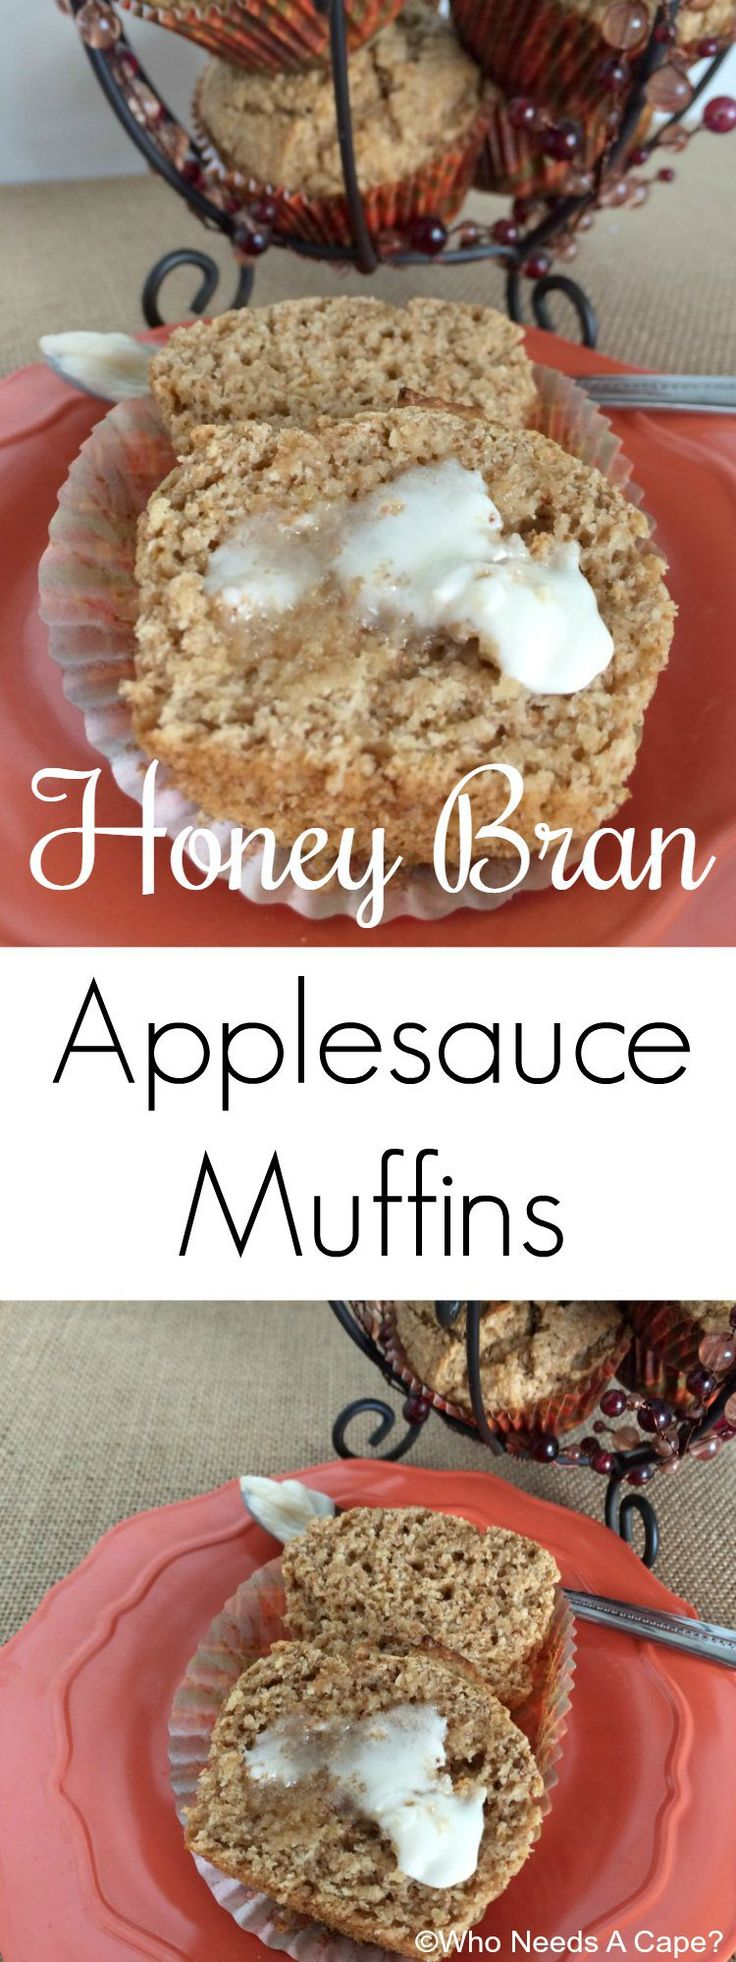 These Honey Bran Applesauce Muffins start with a Martha White® Muffin Mix. By simply adding applesauce and a touch of yogurt the results are delicious. #ad